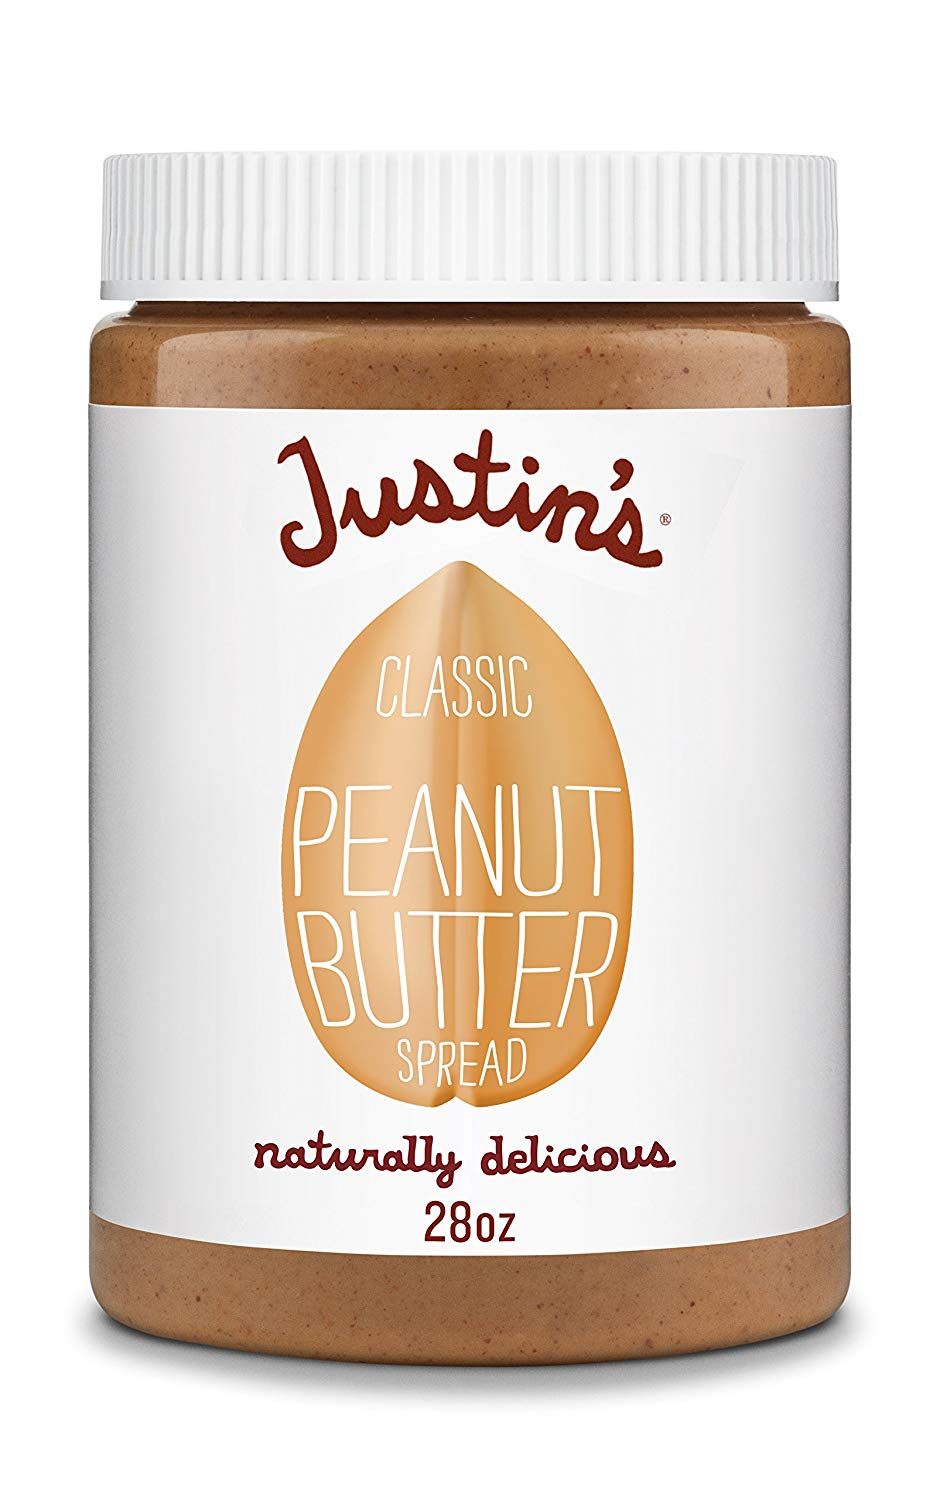 low carb peanut butter, justin's classic peanut butter